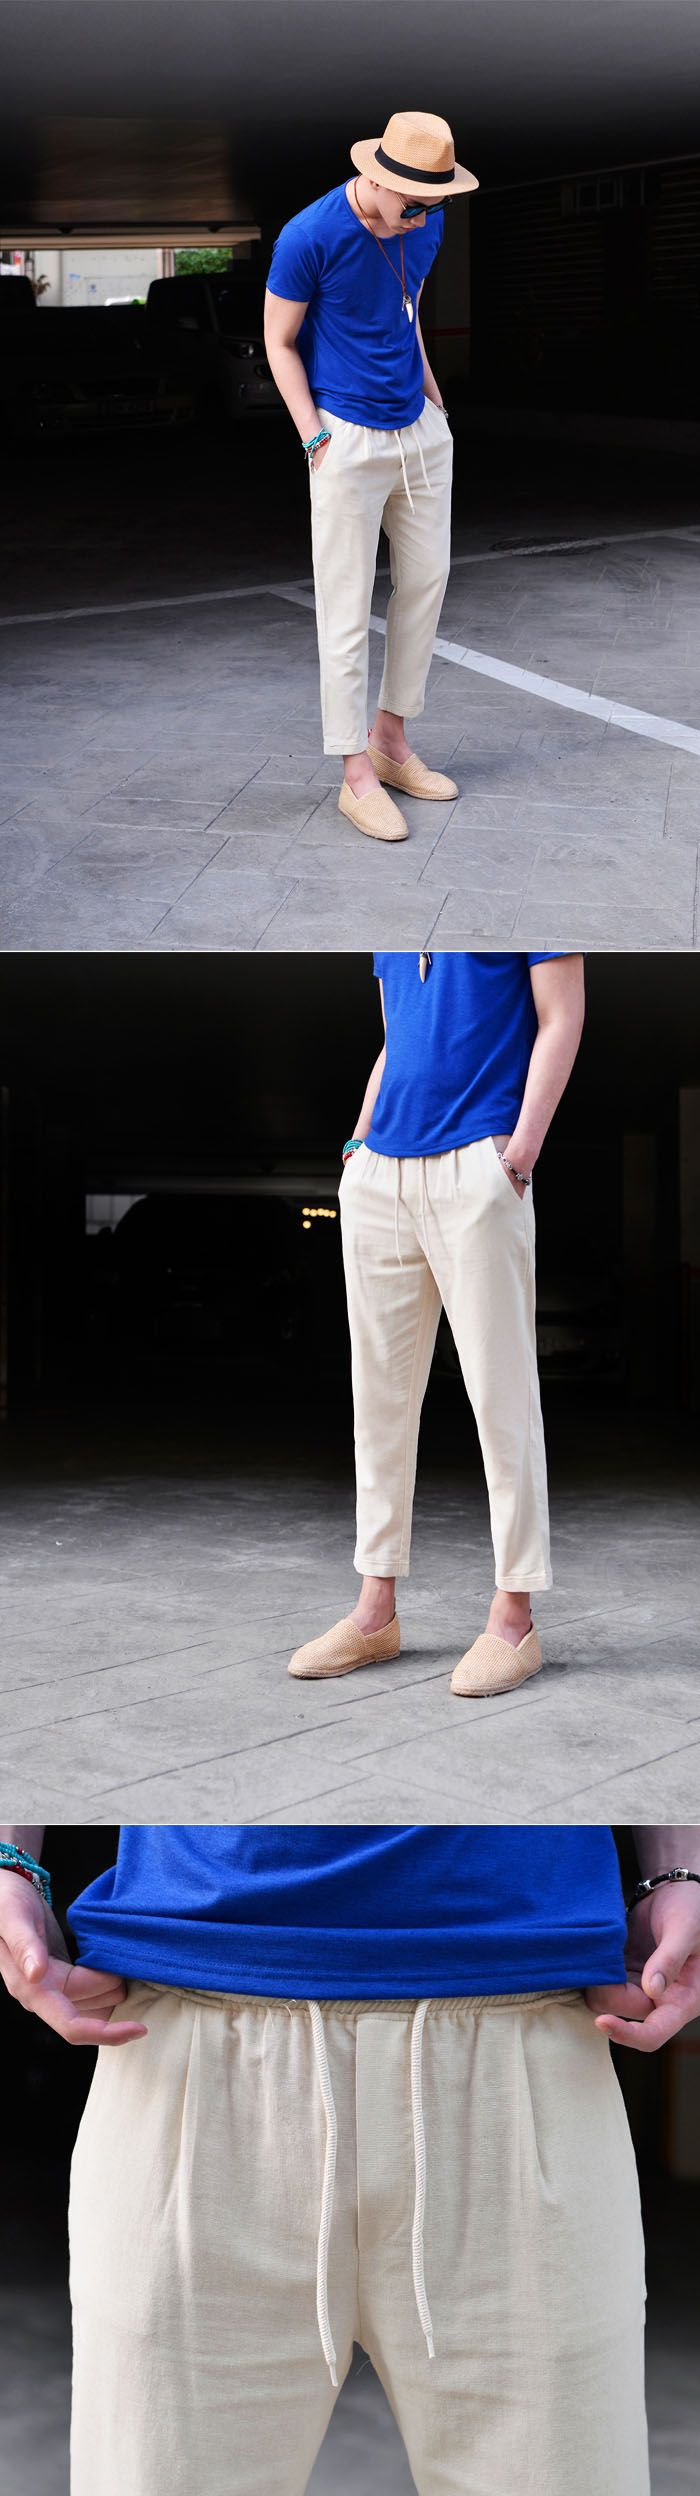 Linen Banding Cropped Turn-up-Pants 238 by Guylook.com  #menswear #guylook #guylooks #menspants #pants #linen #summer #ootd #style #mensfashion #fashion #cool #outfit #남자 #패션 #스타일 #스타일리쉬 #남성쇼핑몰 #남성스타일 #남자스타일 #여름